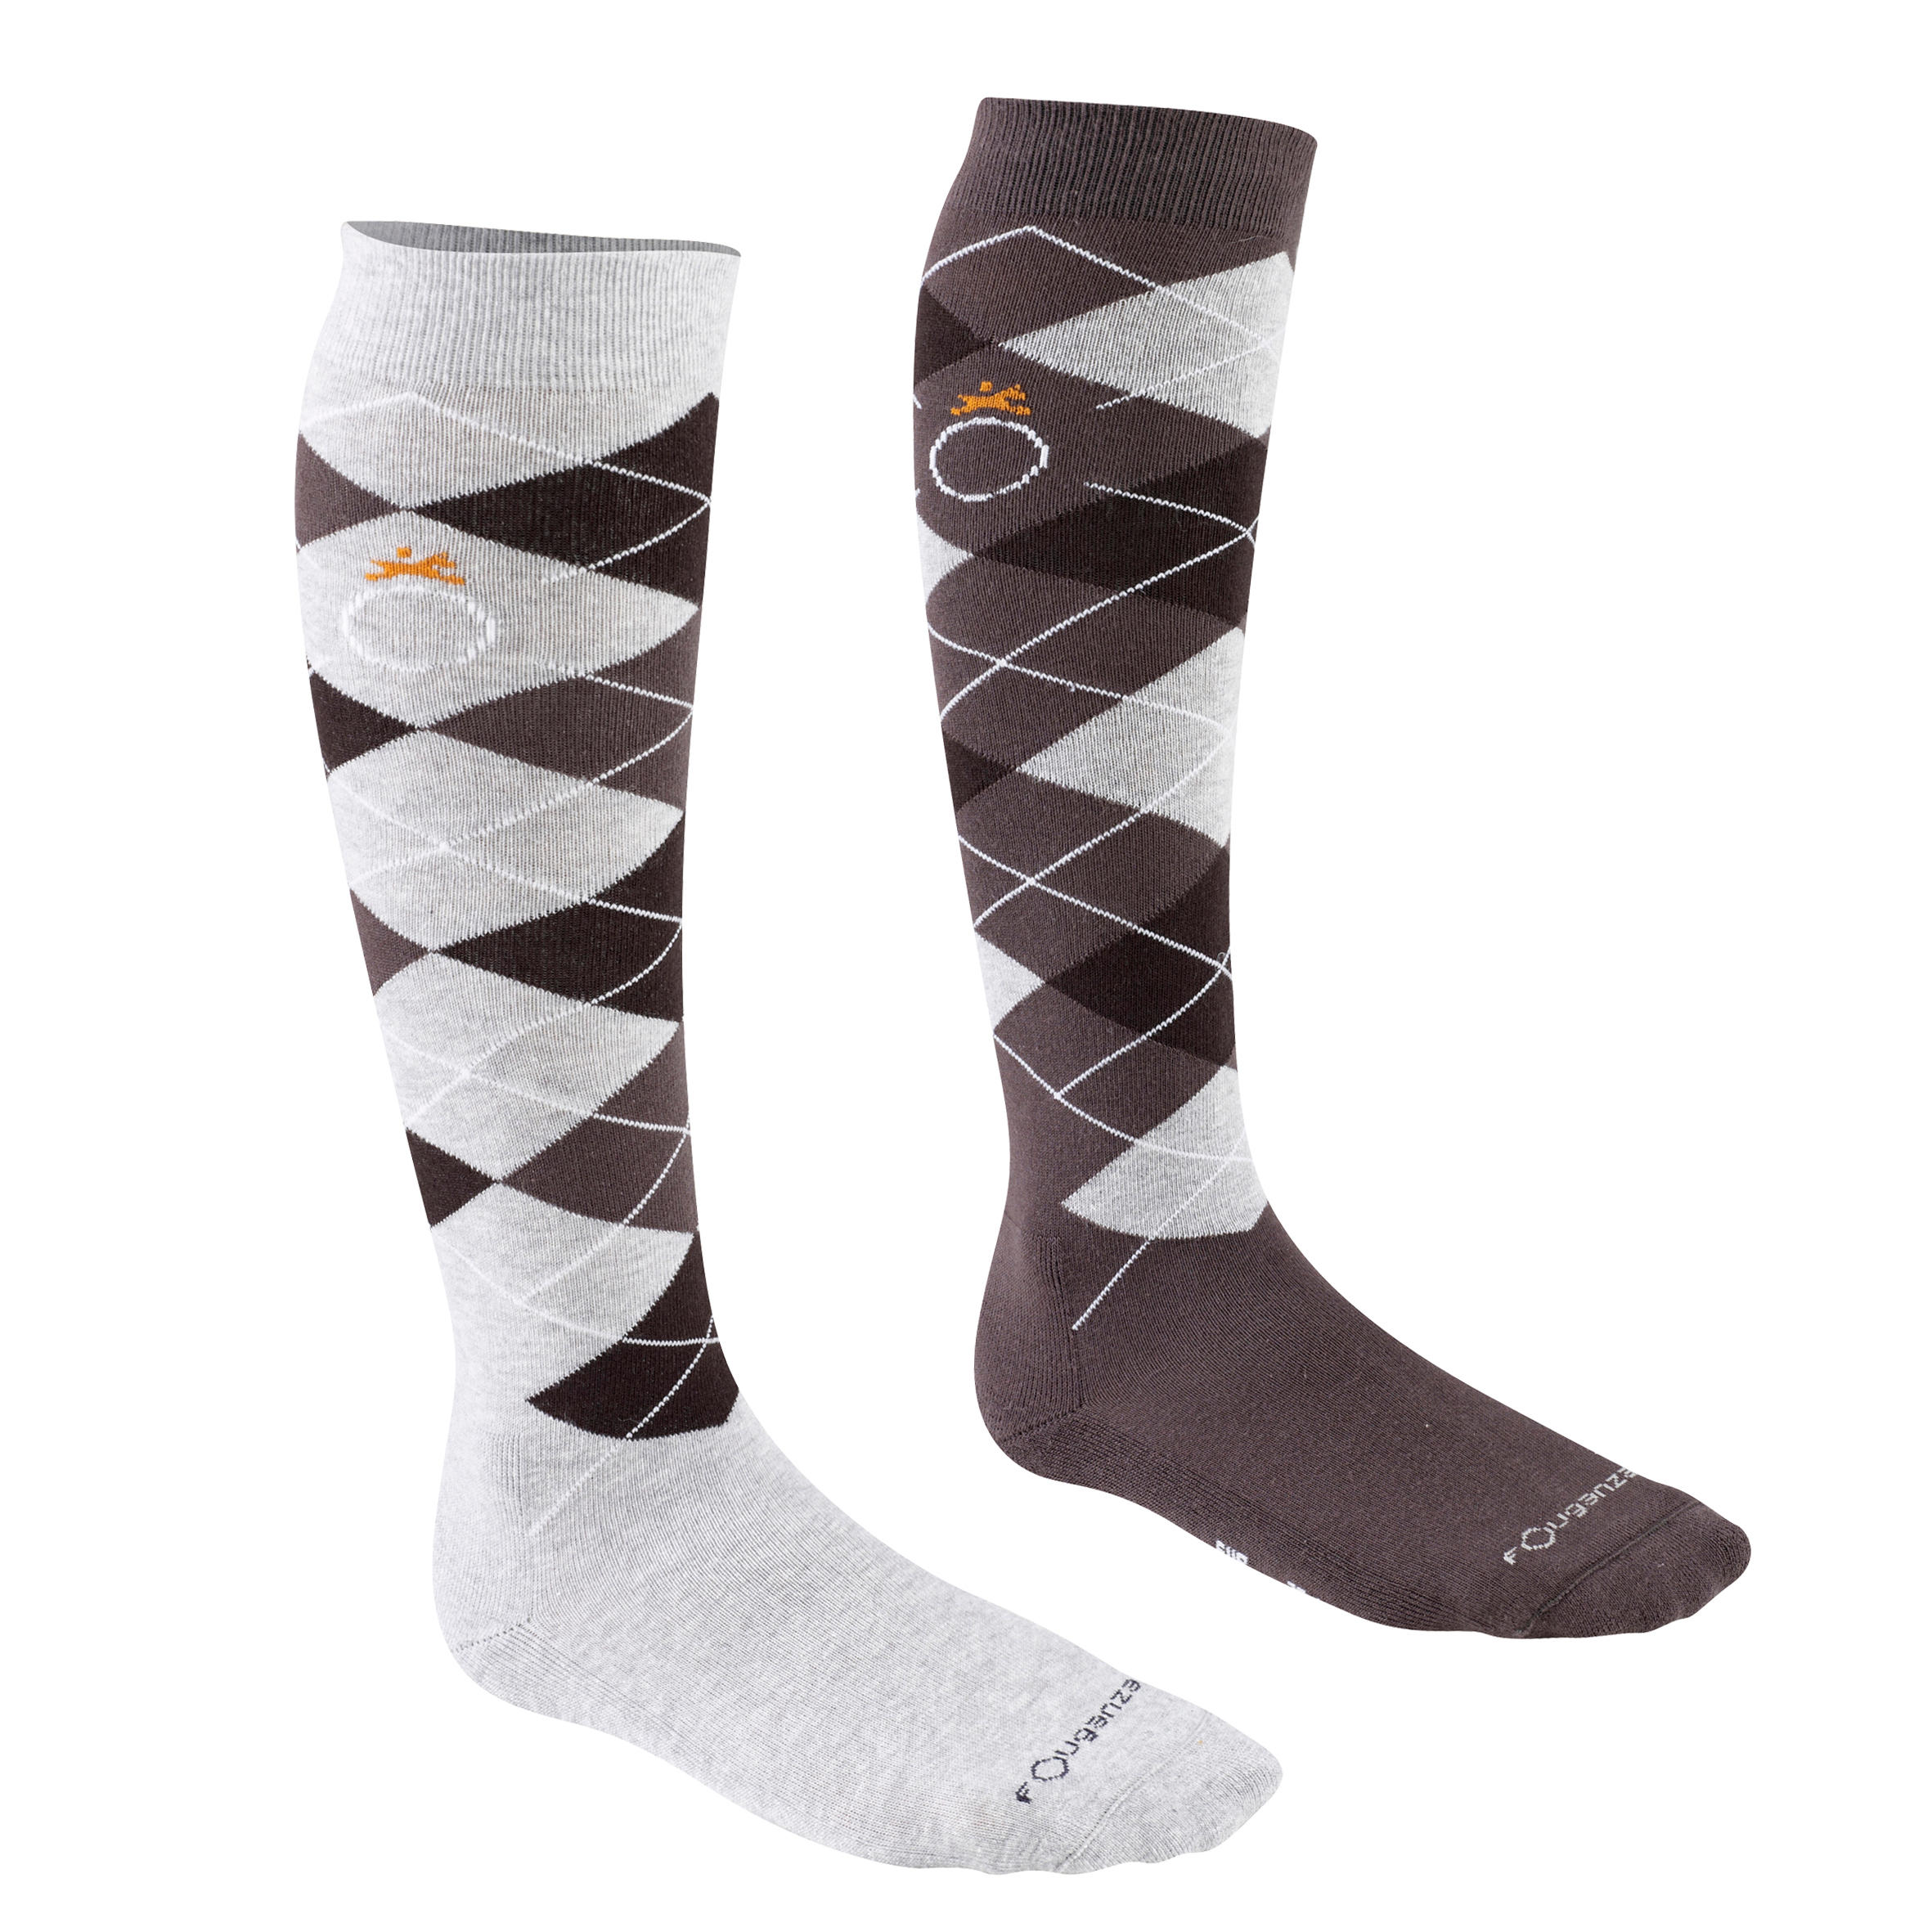 Adult Horseback Riding Argyle Socks 2-Pair - Grey/Black